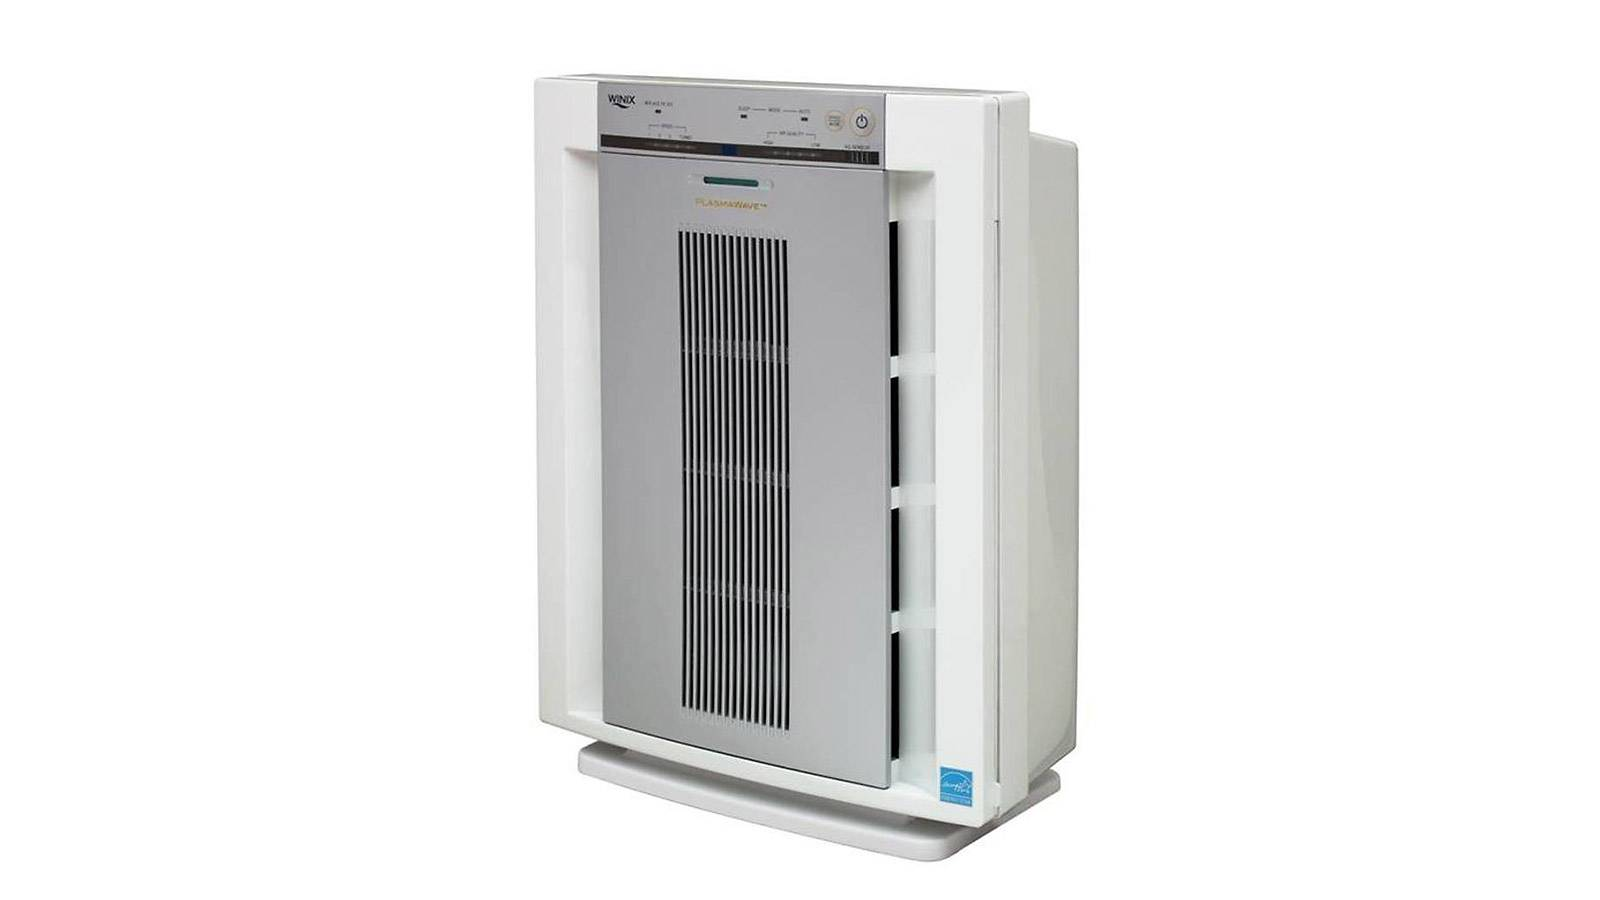 Winix WAC-5500 True HEPA Air Cleaner with PlasmaWave Technology